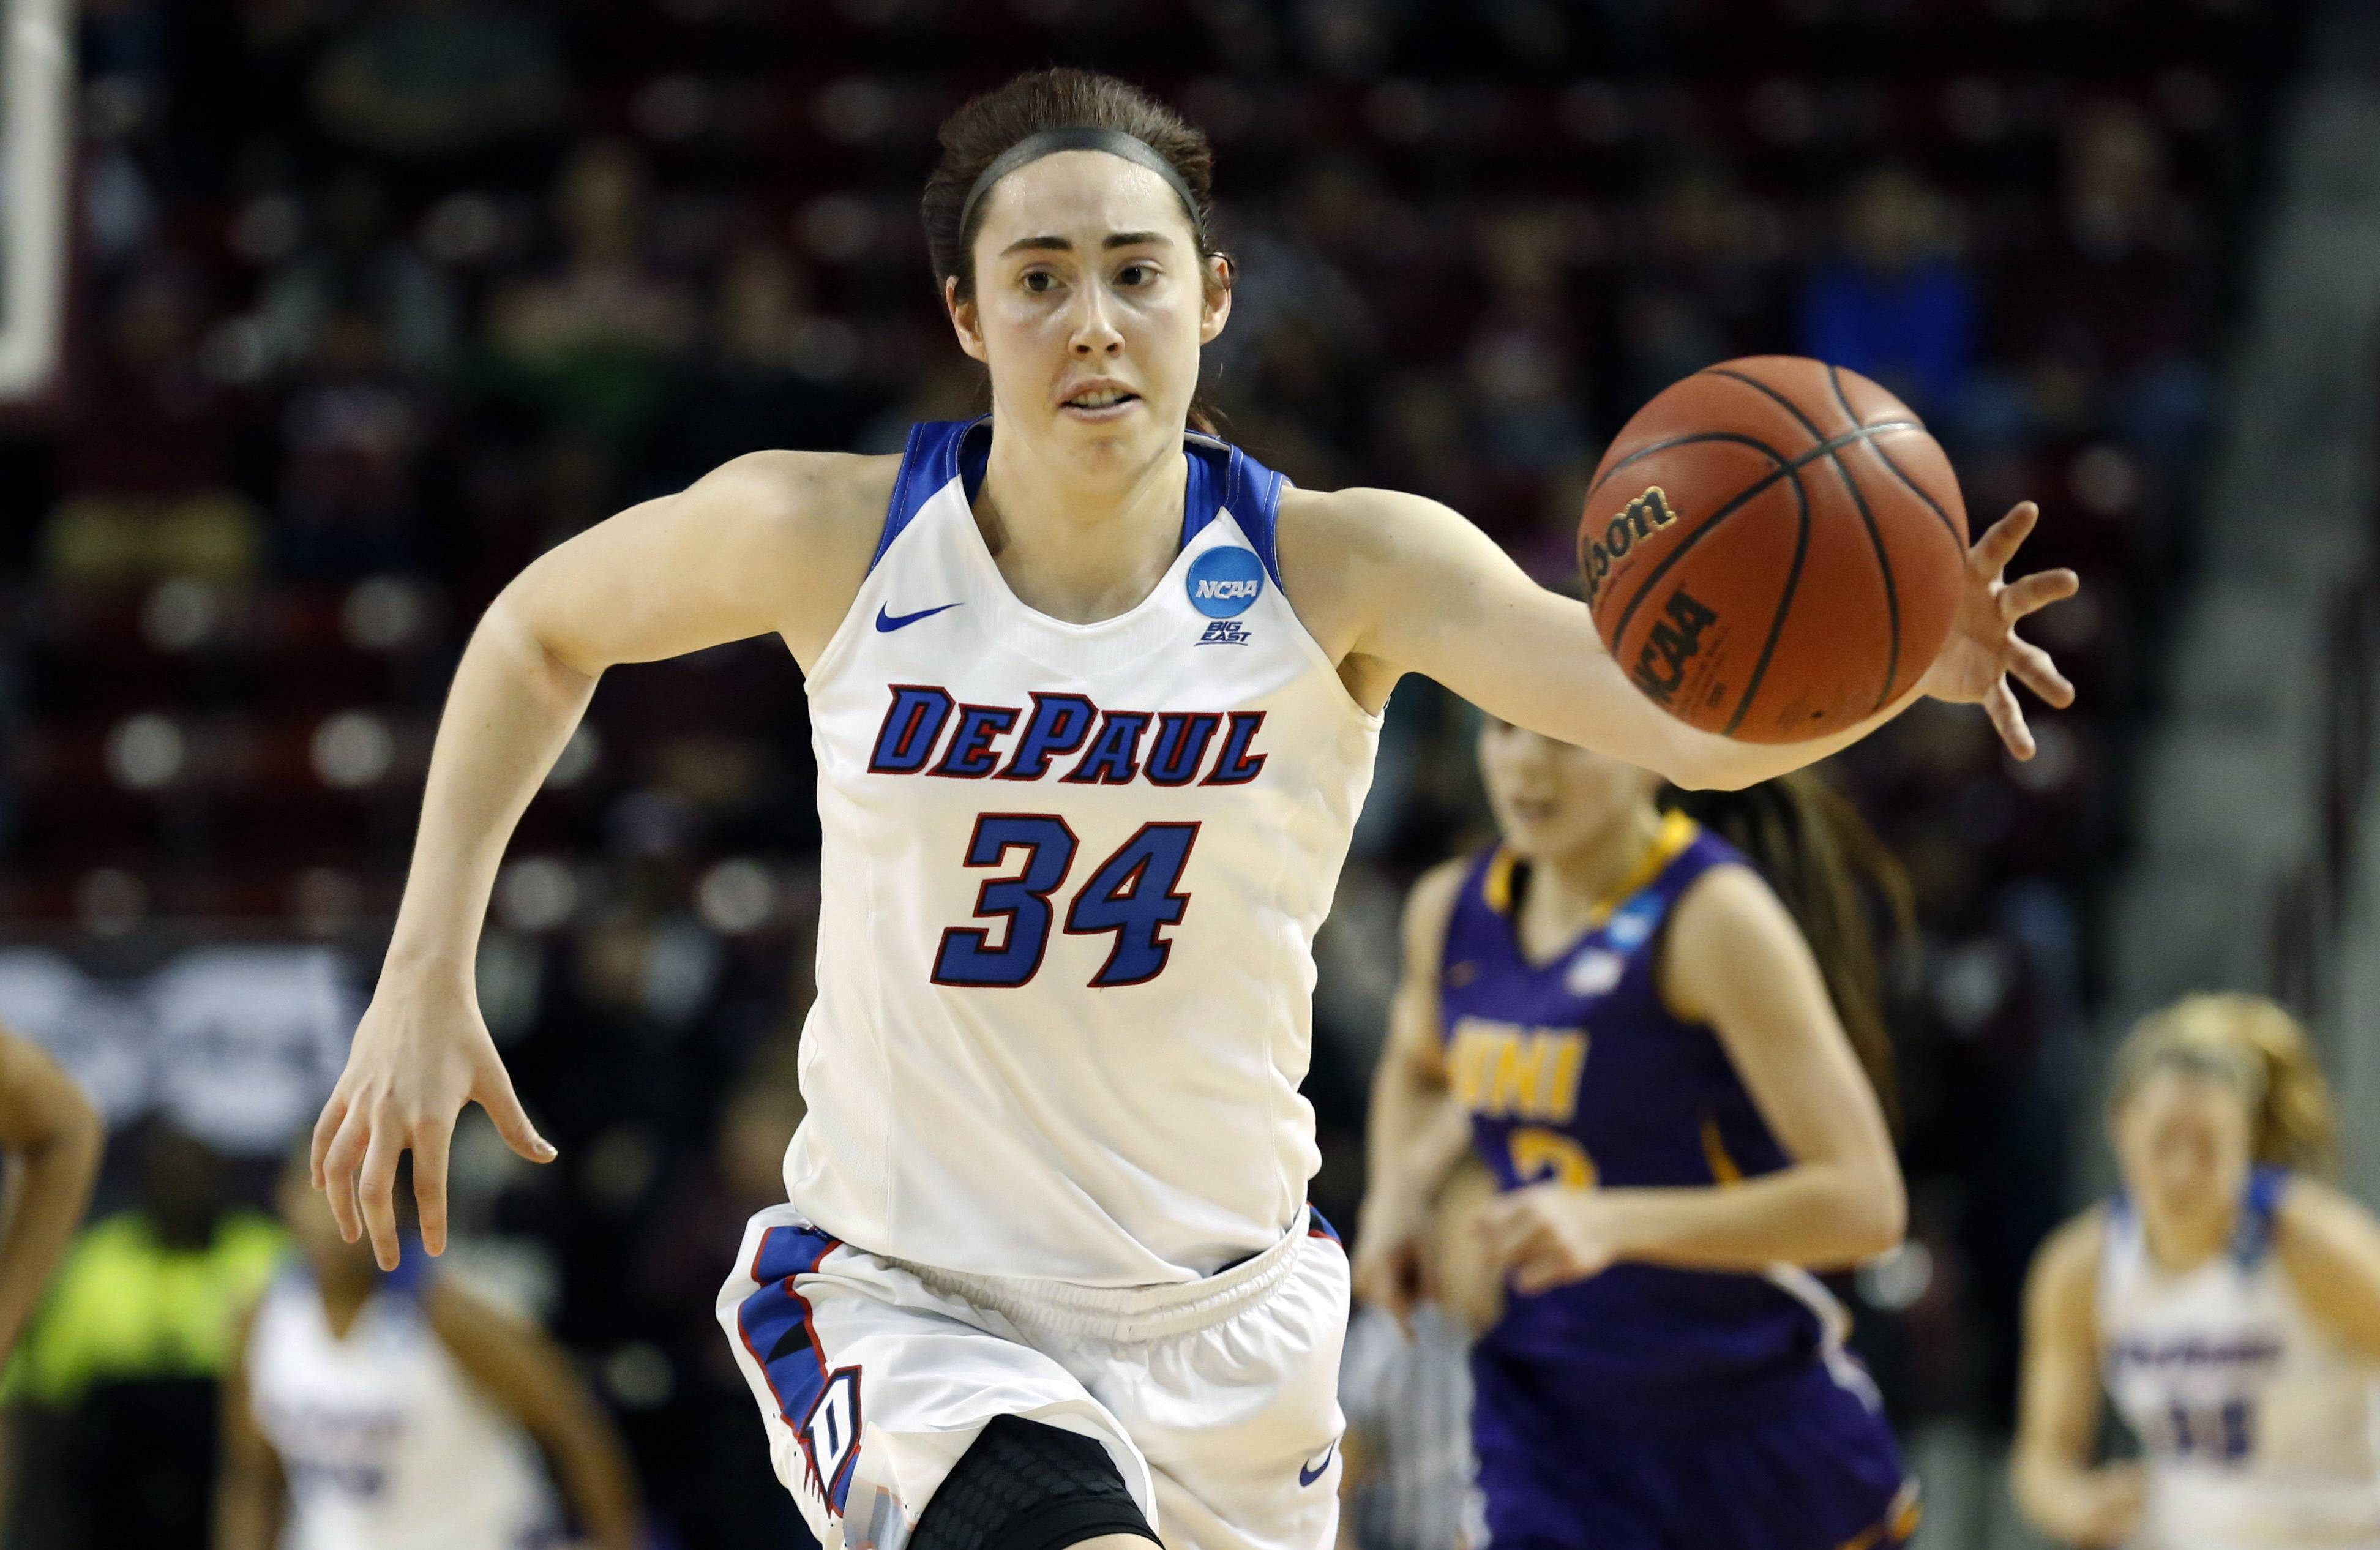 DePaul forward Jacqui Grant (34) begins a fast break against Northern Iowa during the second half of a first-round game in the women's NCAA college basketball tournament in Starkville, Miss., Friday, March 17, 2017. DePaul won 88-67.